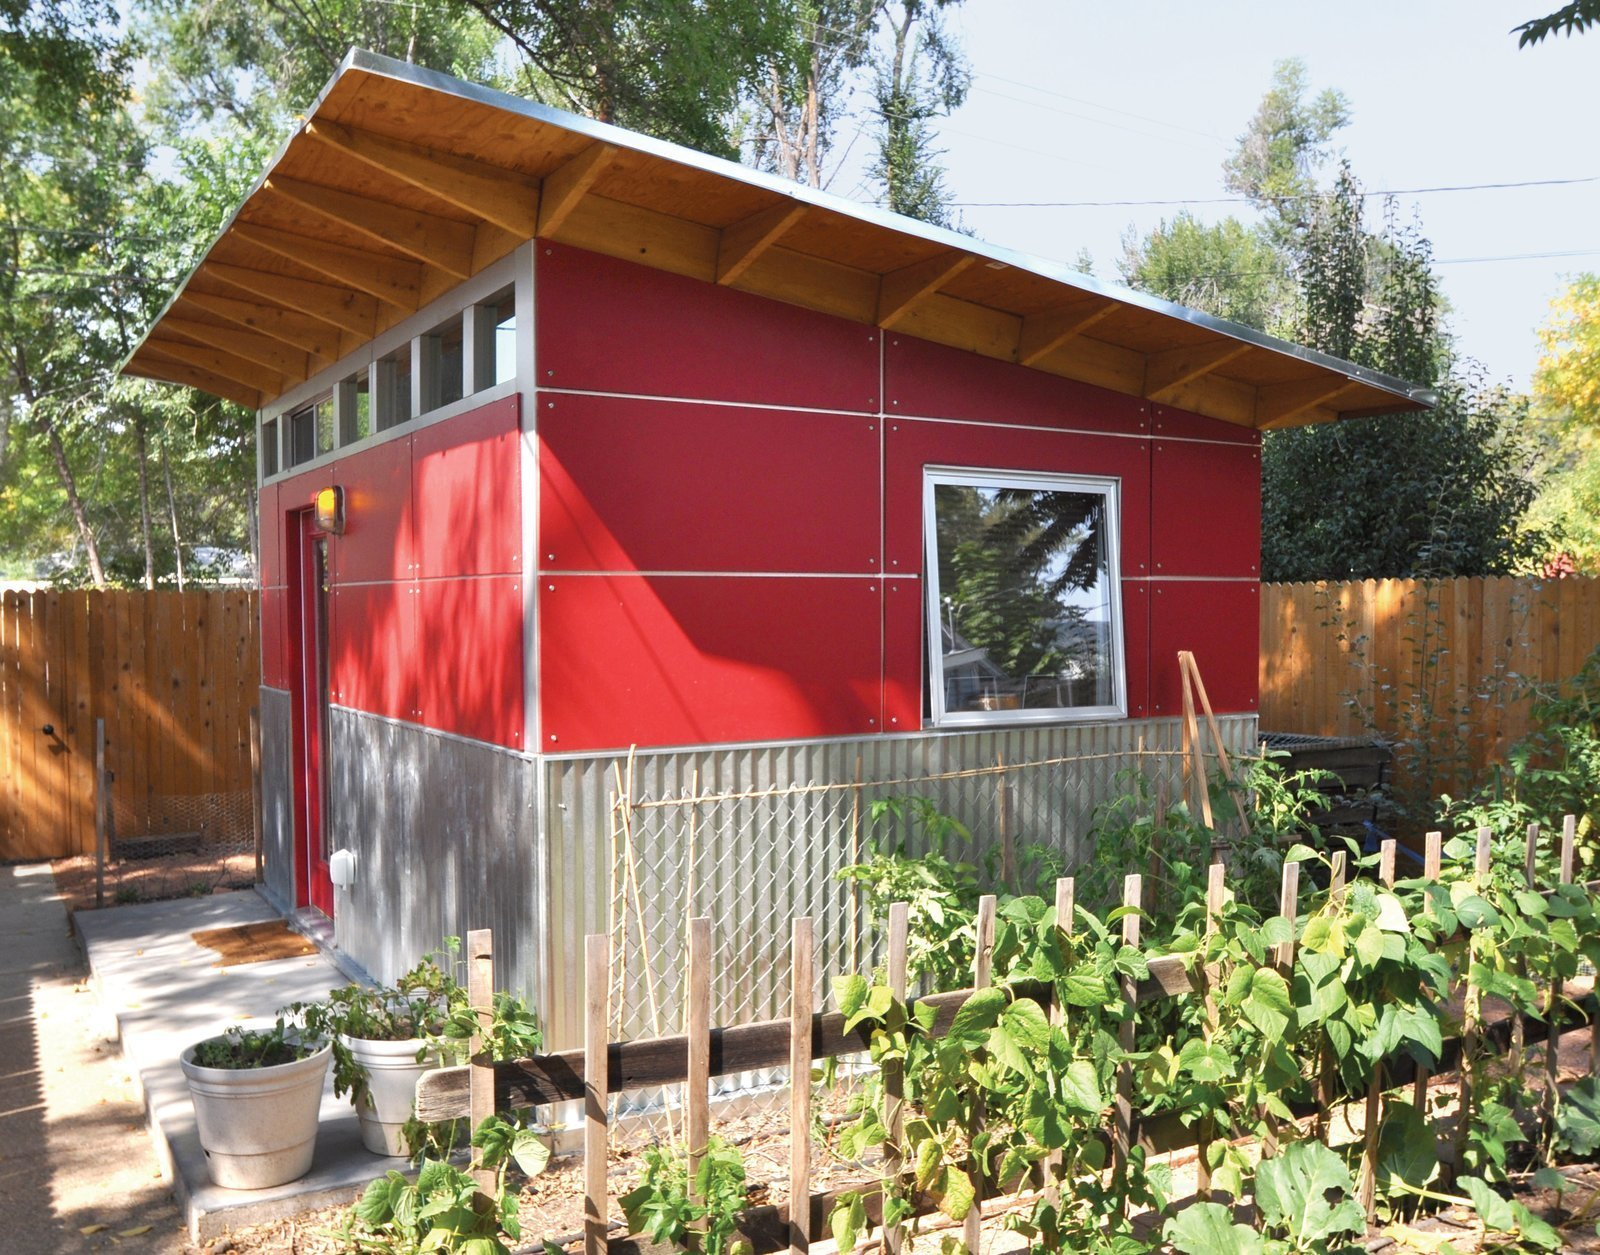 office sheds. Photo 9 Of In 8 Tiny Sheds And Studios Used As Home Offices Or Creative Retreats - Dwell Office